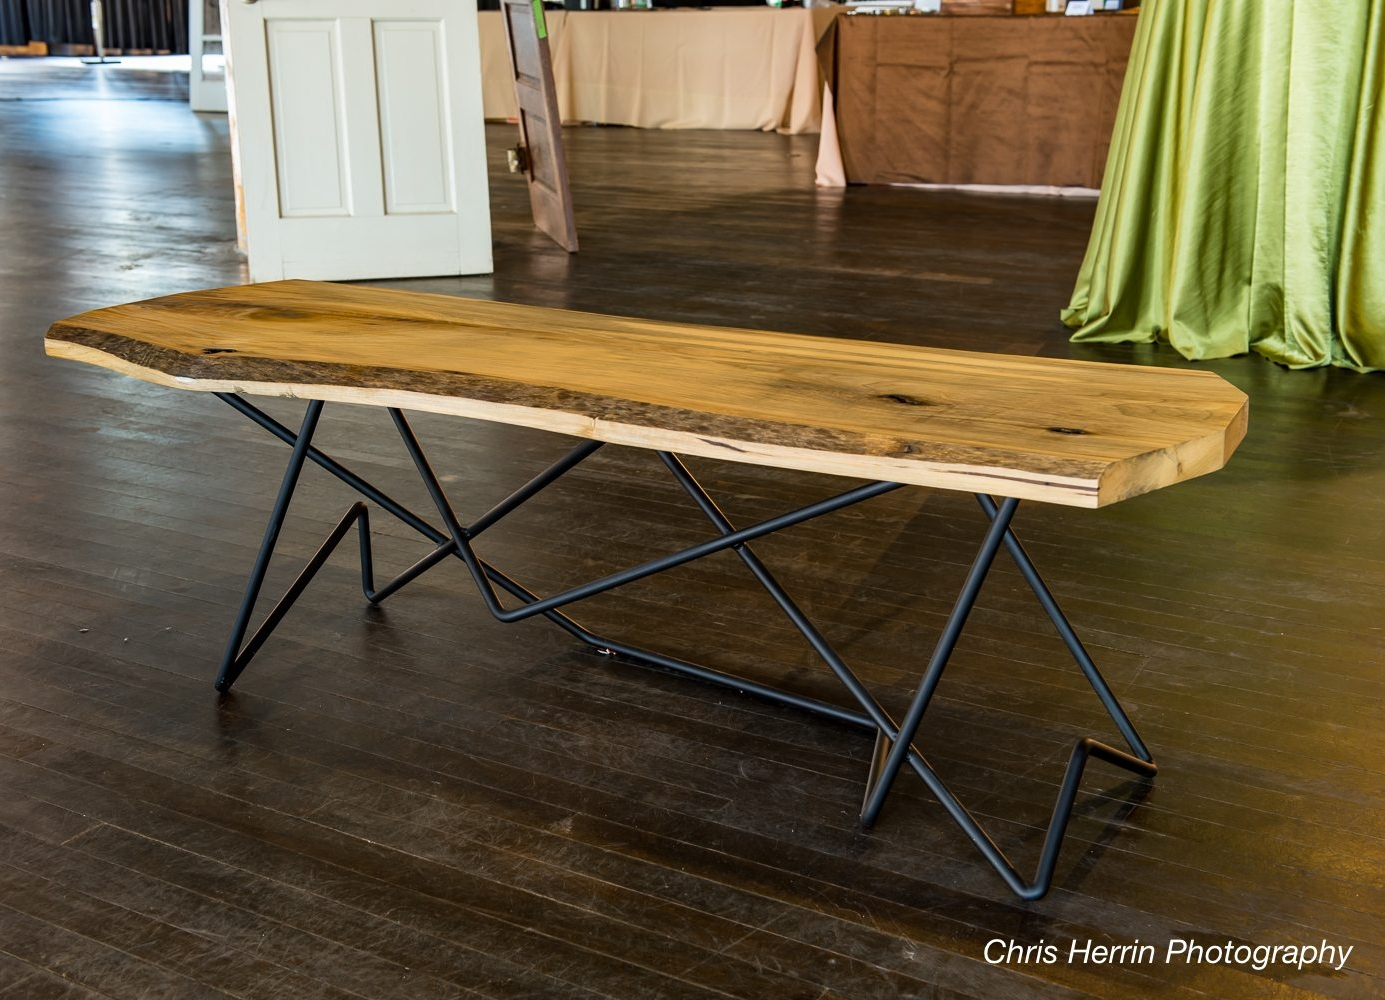 Phil Proctor, a sculptor and Art on the Atlanta BeltLine artist, fabricated this table from one of the poplar slabs. Photo credit: Chris Herrin Photography.